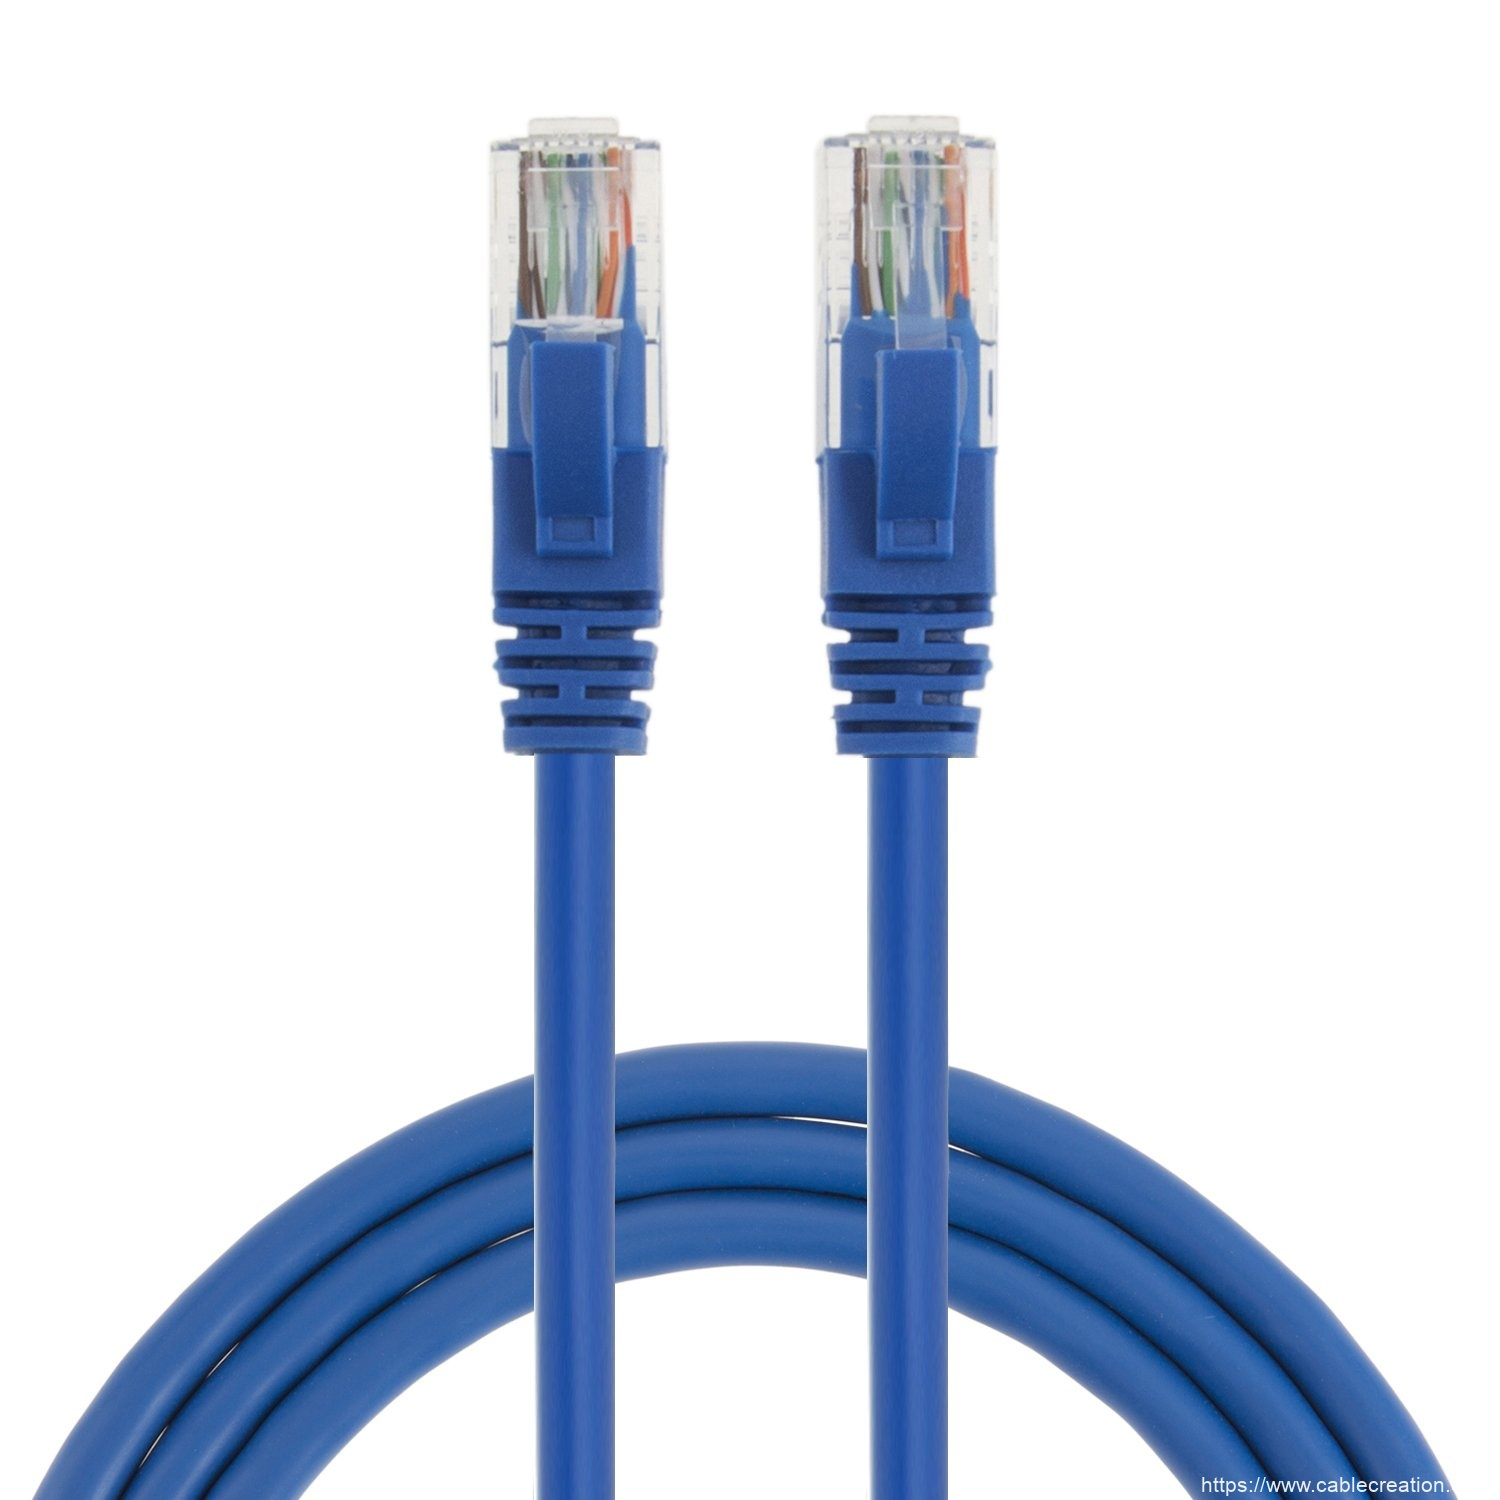 PriceList for Cat 6 Keystone Coupler - CAT6 Ethernet Cable 30Feet/10 Meters, #CL0138 – CableCreation